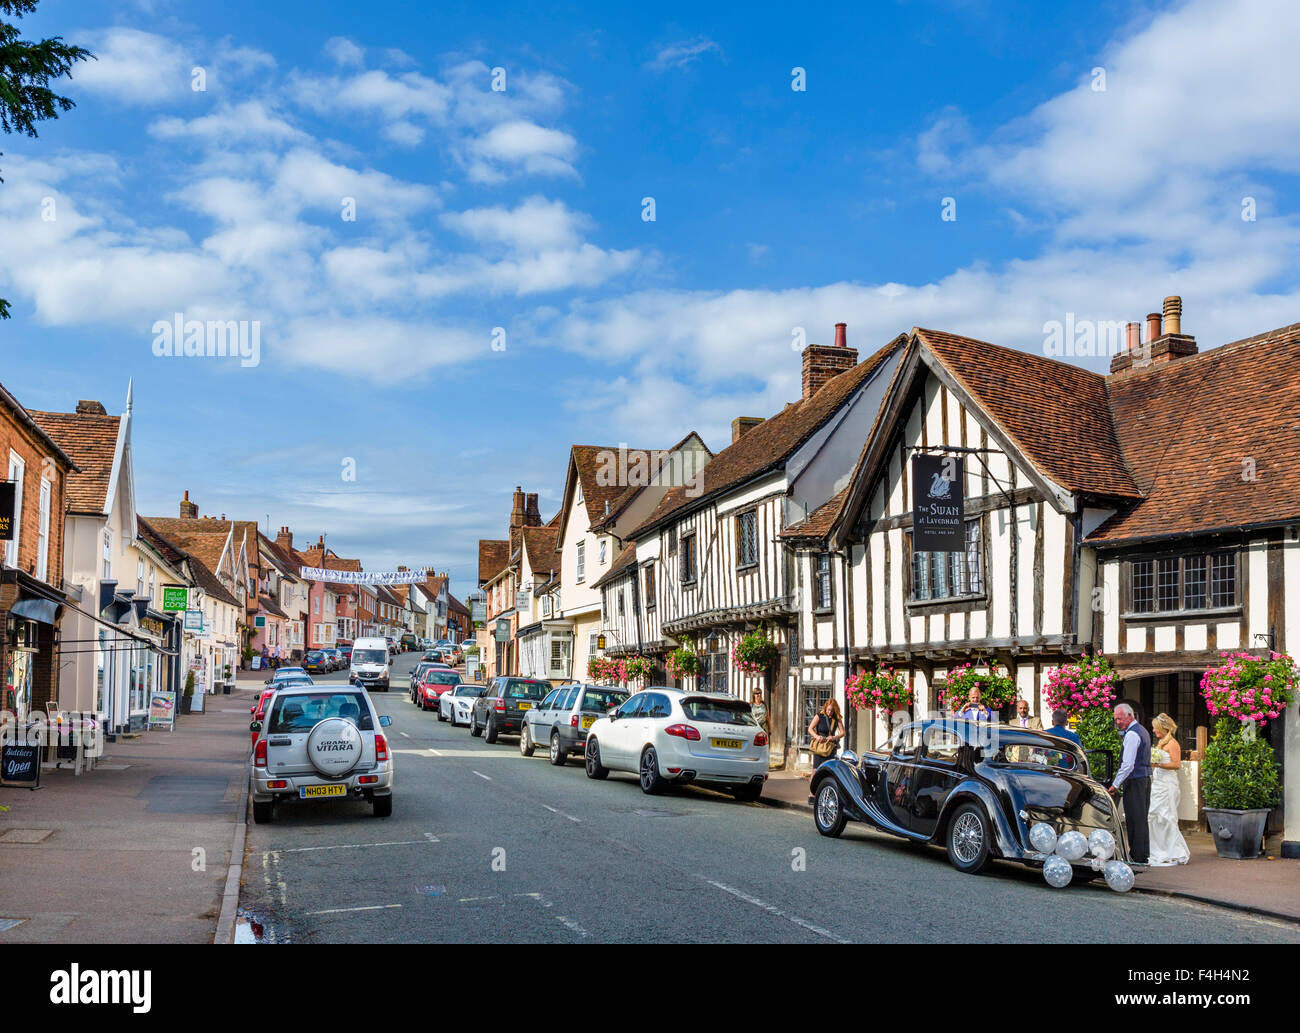 The High Street with the Swan Hotel to the right, Lavenham, Suffolk, England, UK - Stock Image